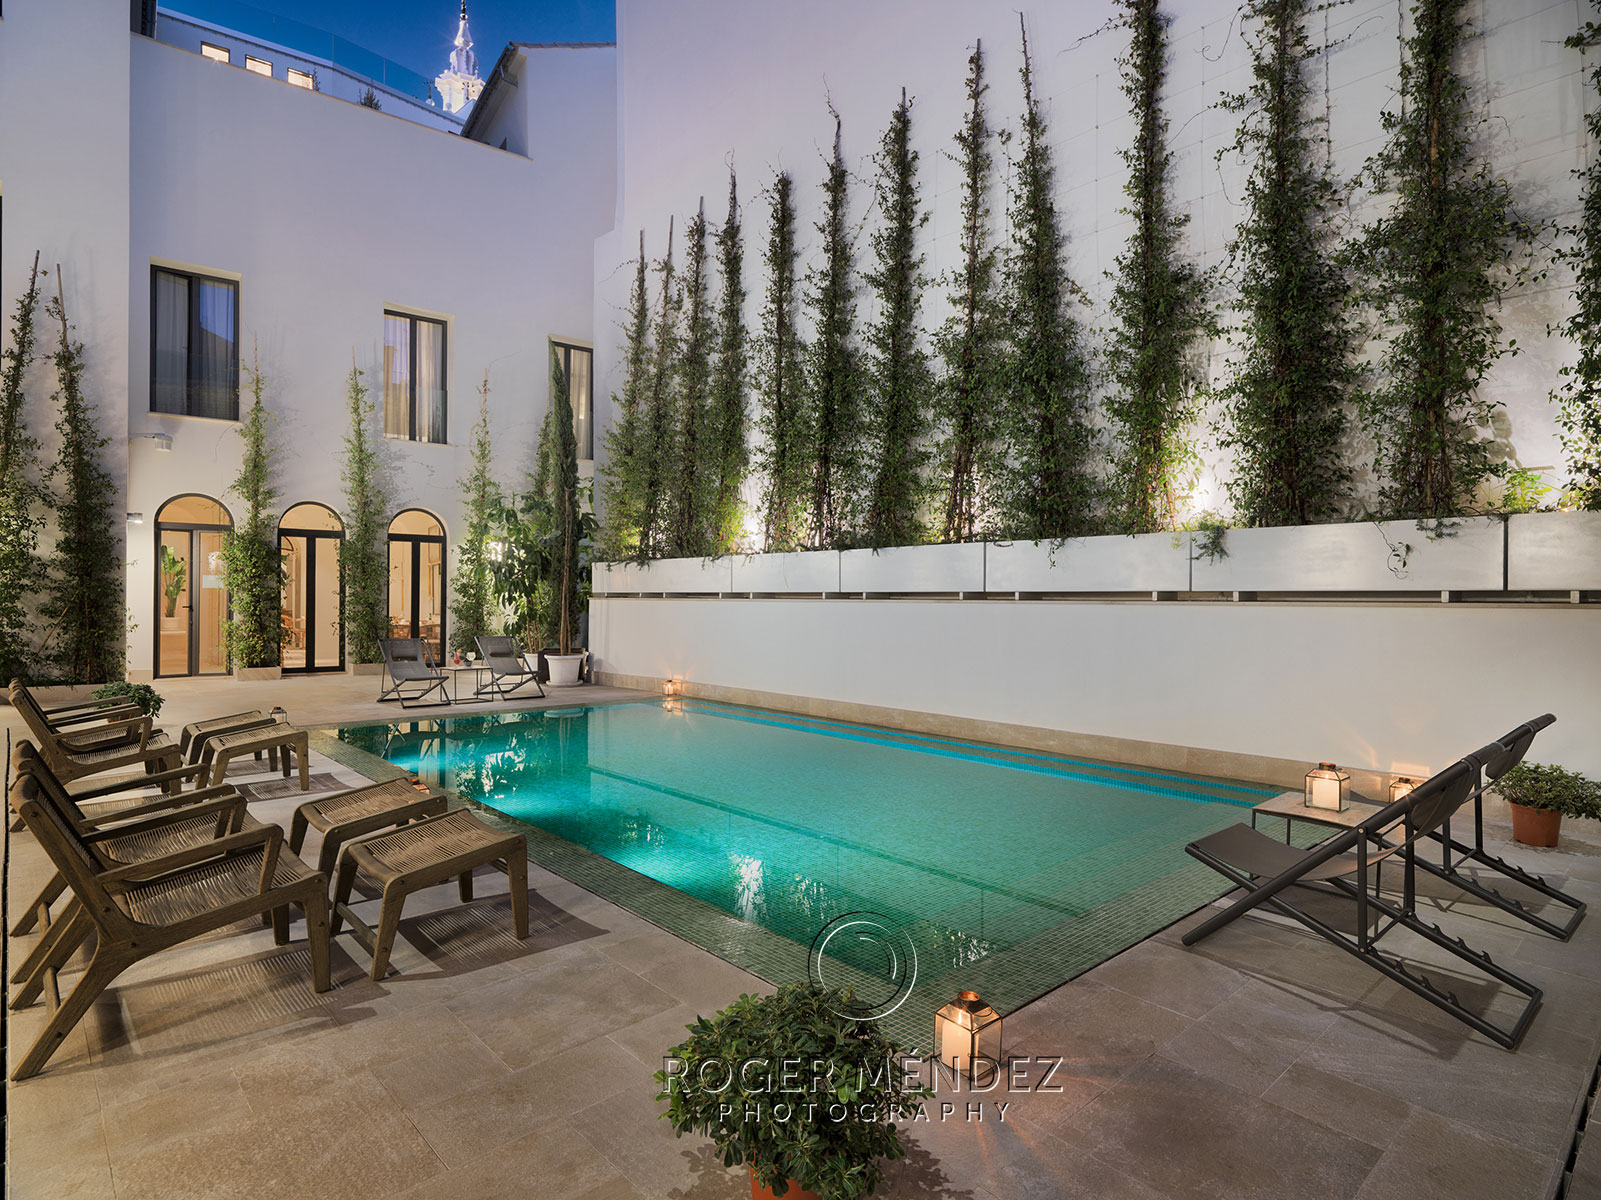 Plunge pool al anochecer